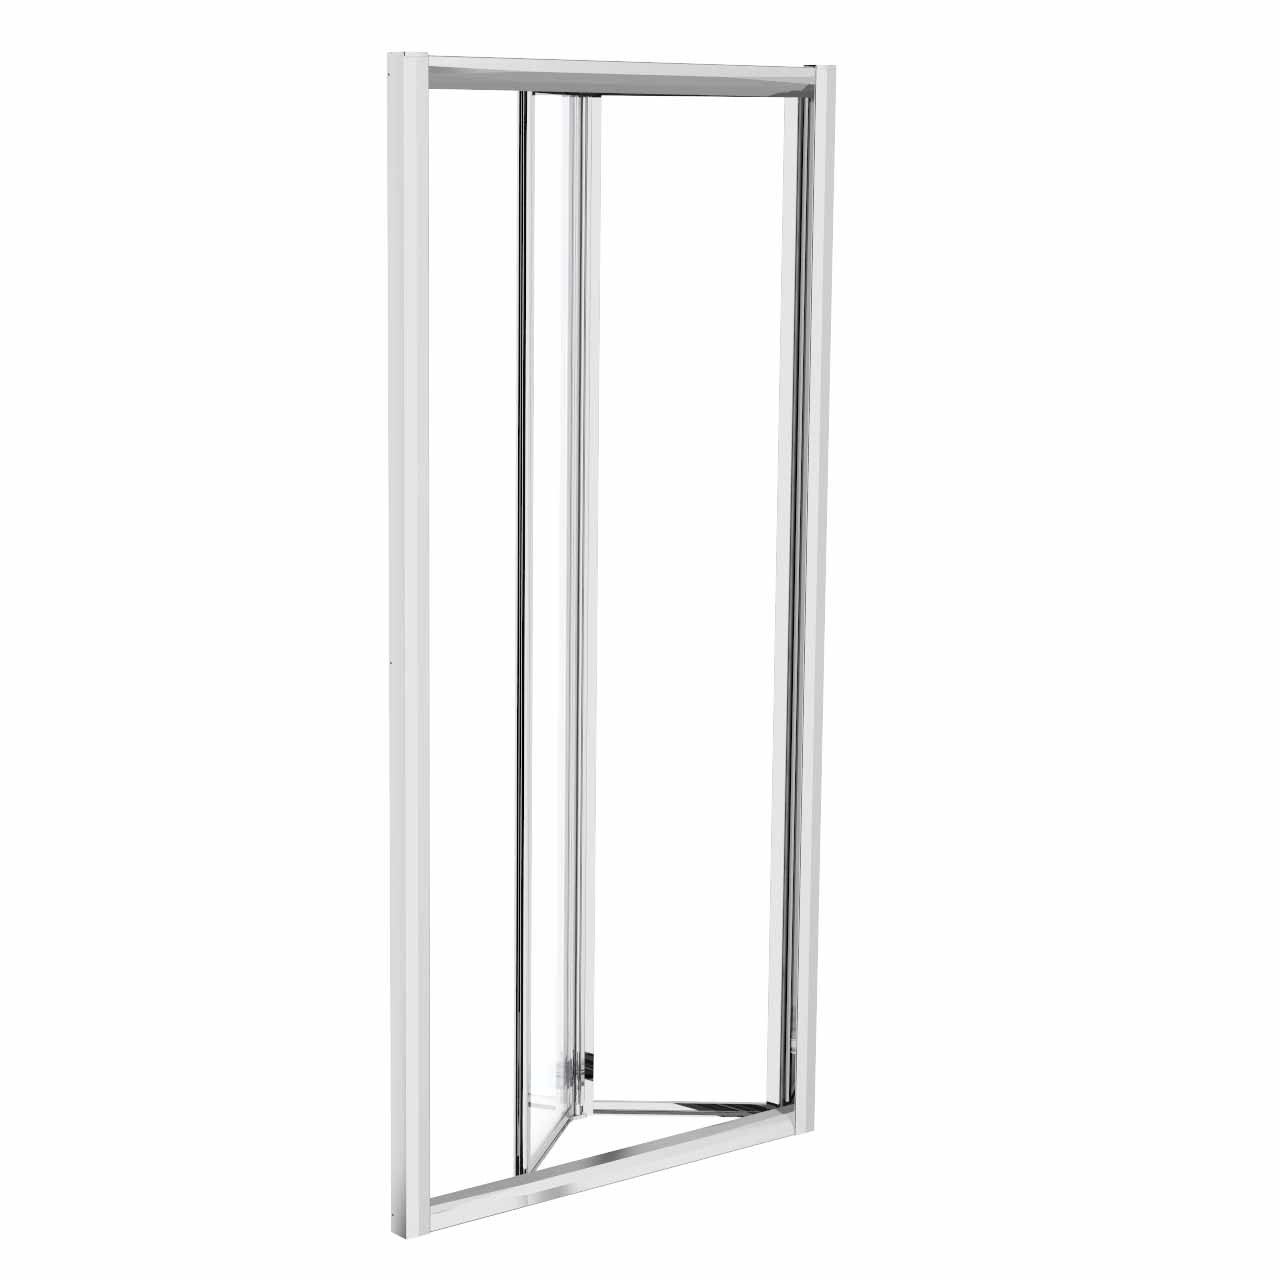 Series 6 900mm x 1000mm Bi Fold Door Shower Enclosure